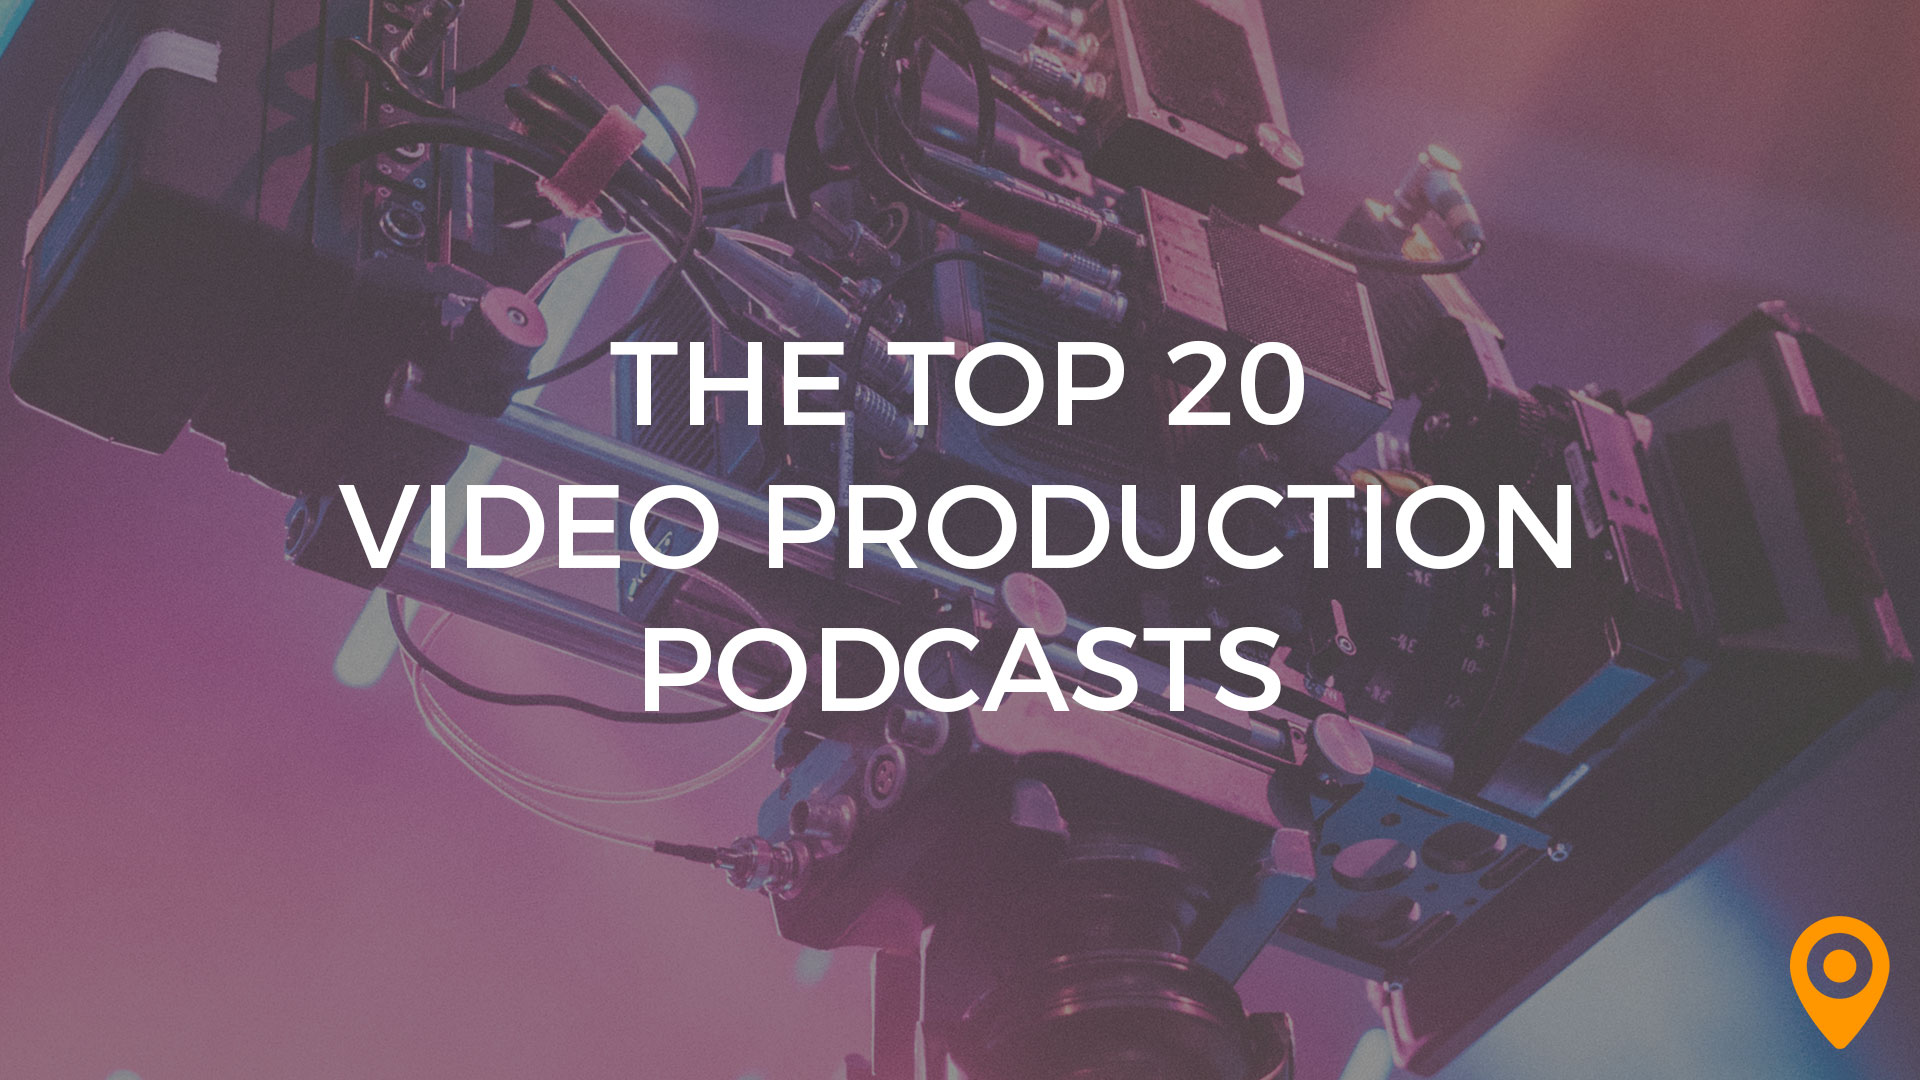 Top 20 Video Production Podcasts